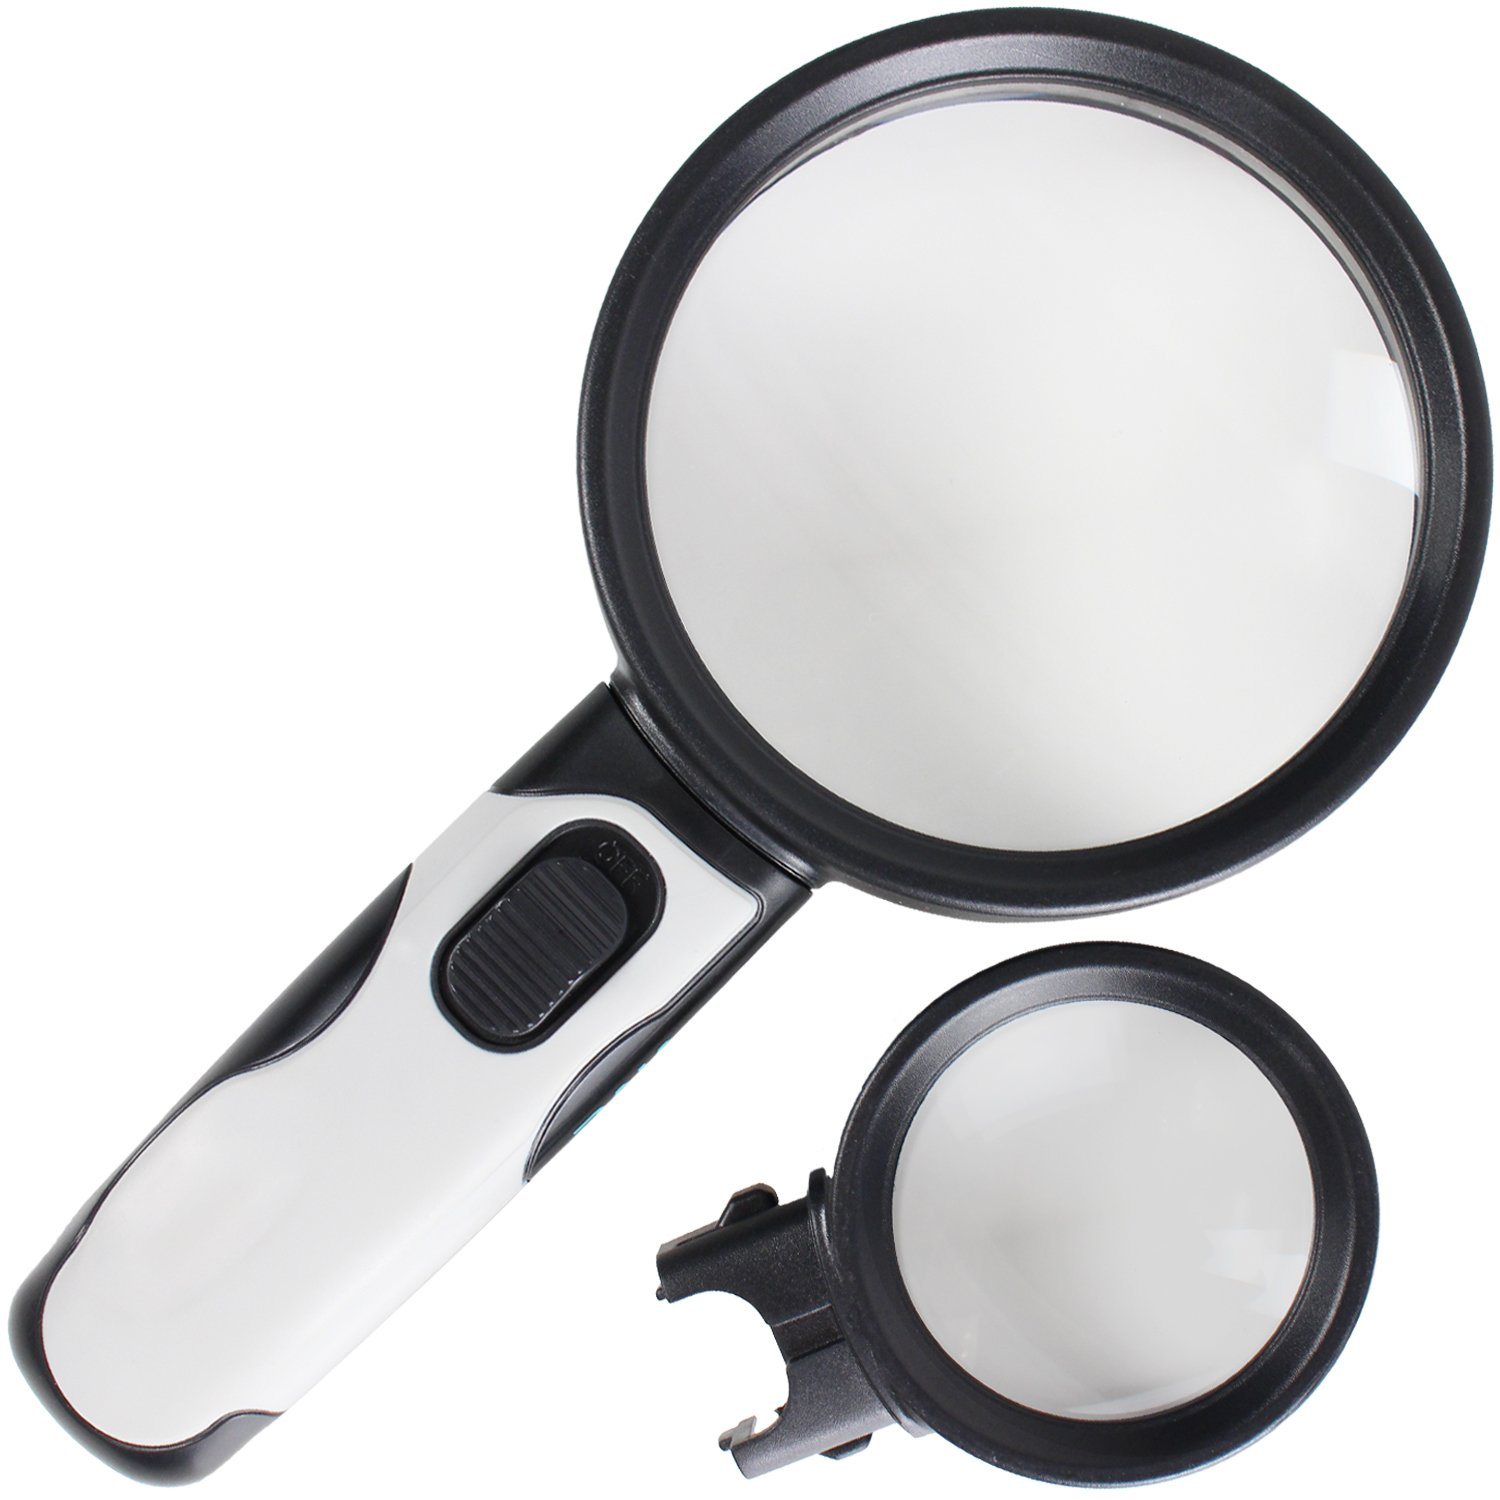 Magnifying Glass with Light by Vive - LED Illuminated Magnifier Jewelers Loupe - Large 5X and Big 10X Lens - Lighted Pocket Map Travel Reading Aid (Black and White)